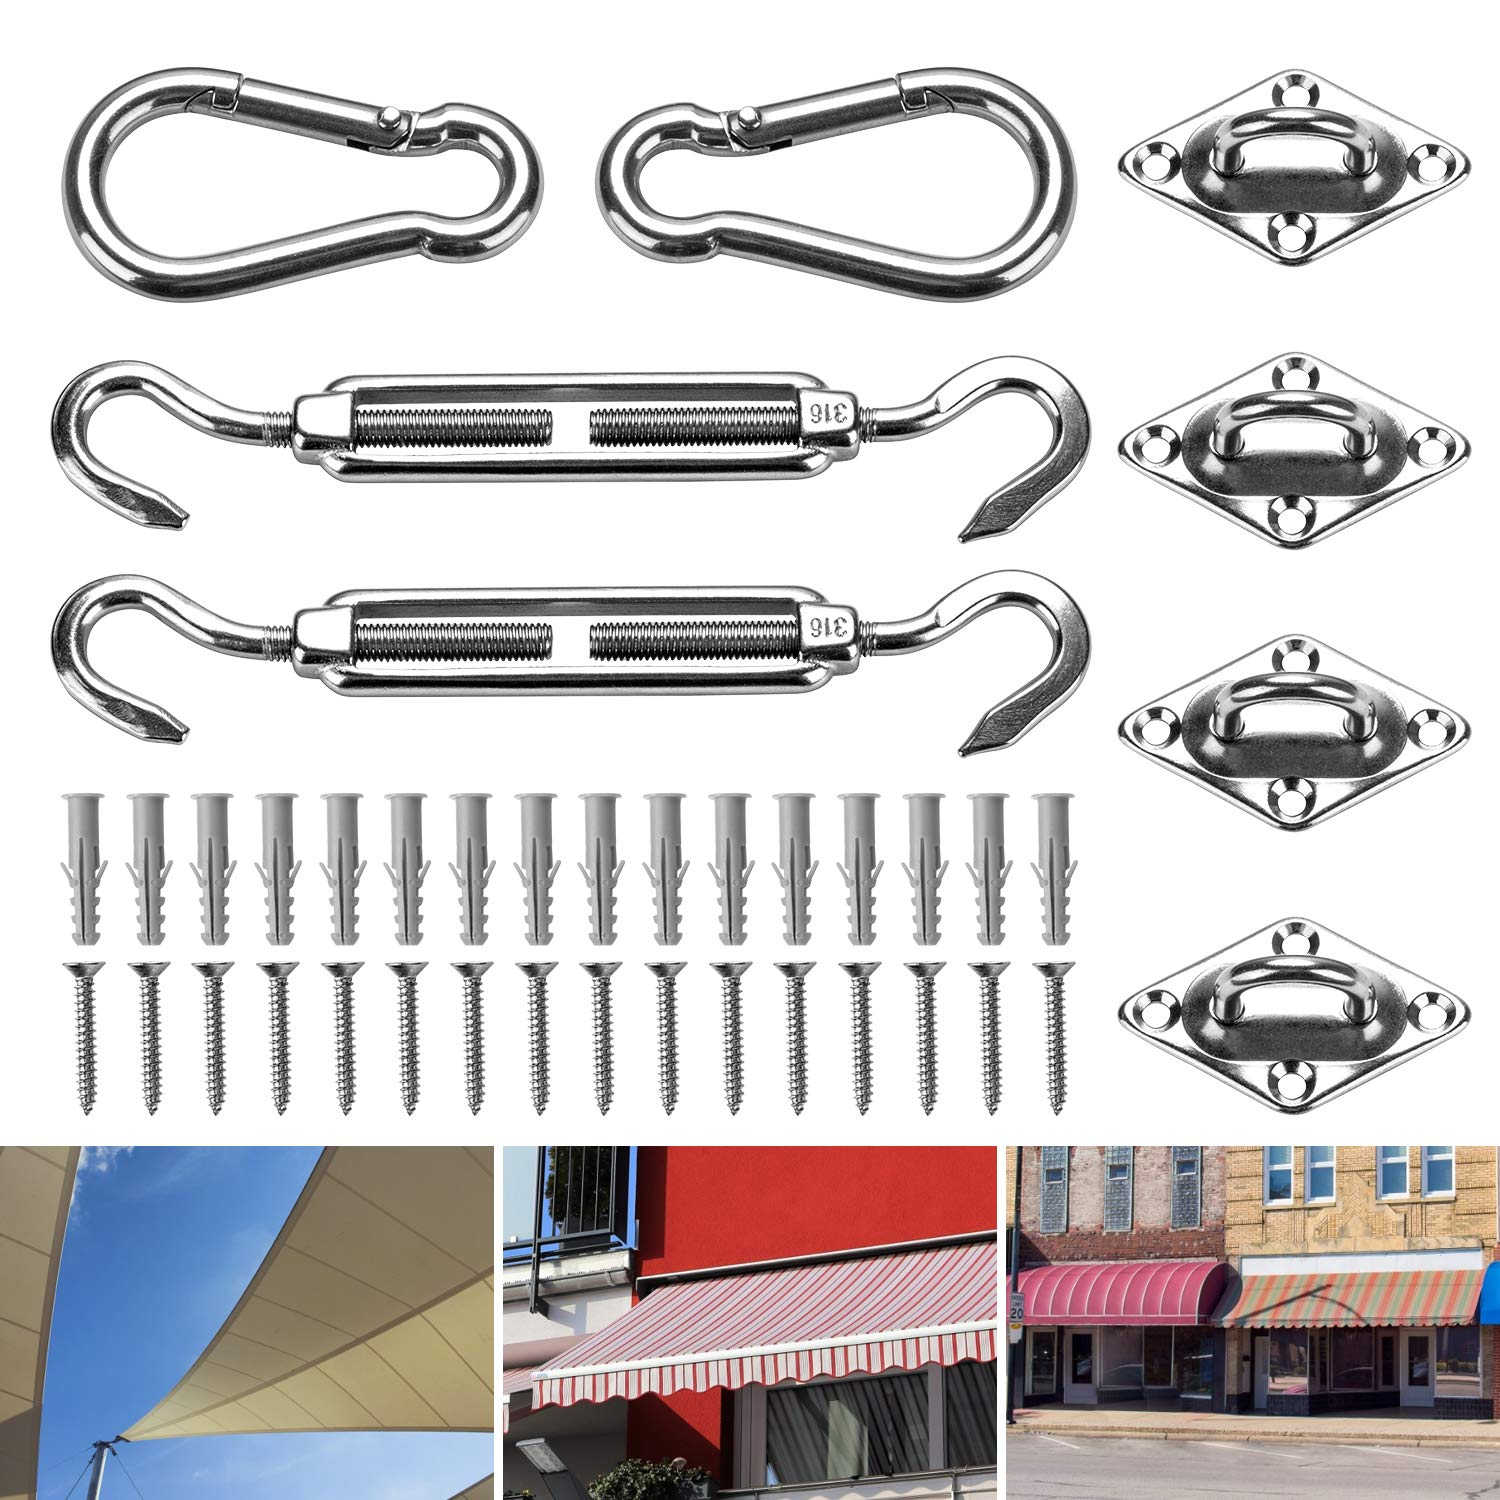 for Rectangle and Square Sun Shade Sail Fixing Sail Canopy Fixings Stainless Steel Shade Sail Accessories 316 Stainless Steel Sun Shade Sail Fixing Hardware Accessories Sun Shade Sail Hardware Kit